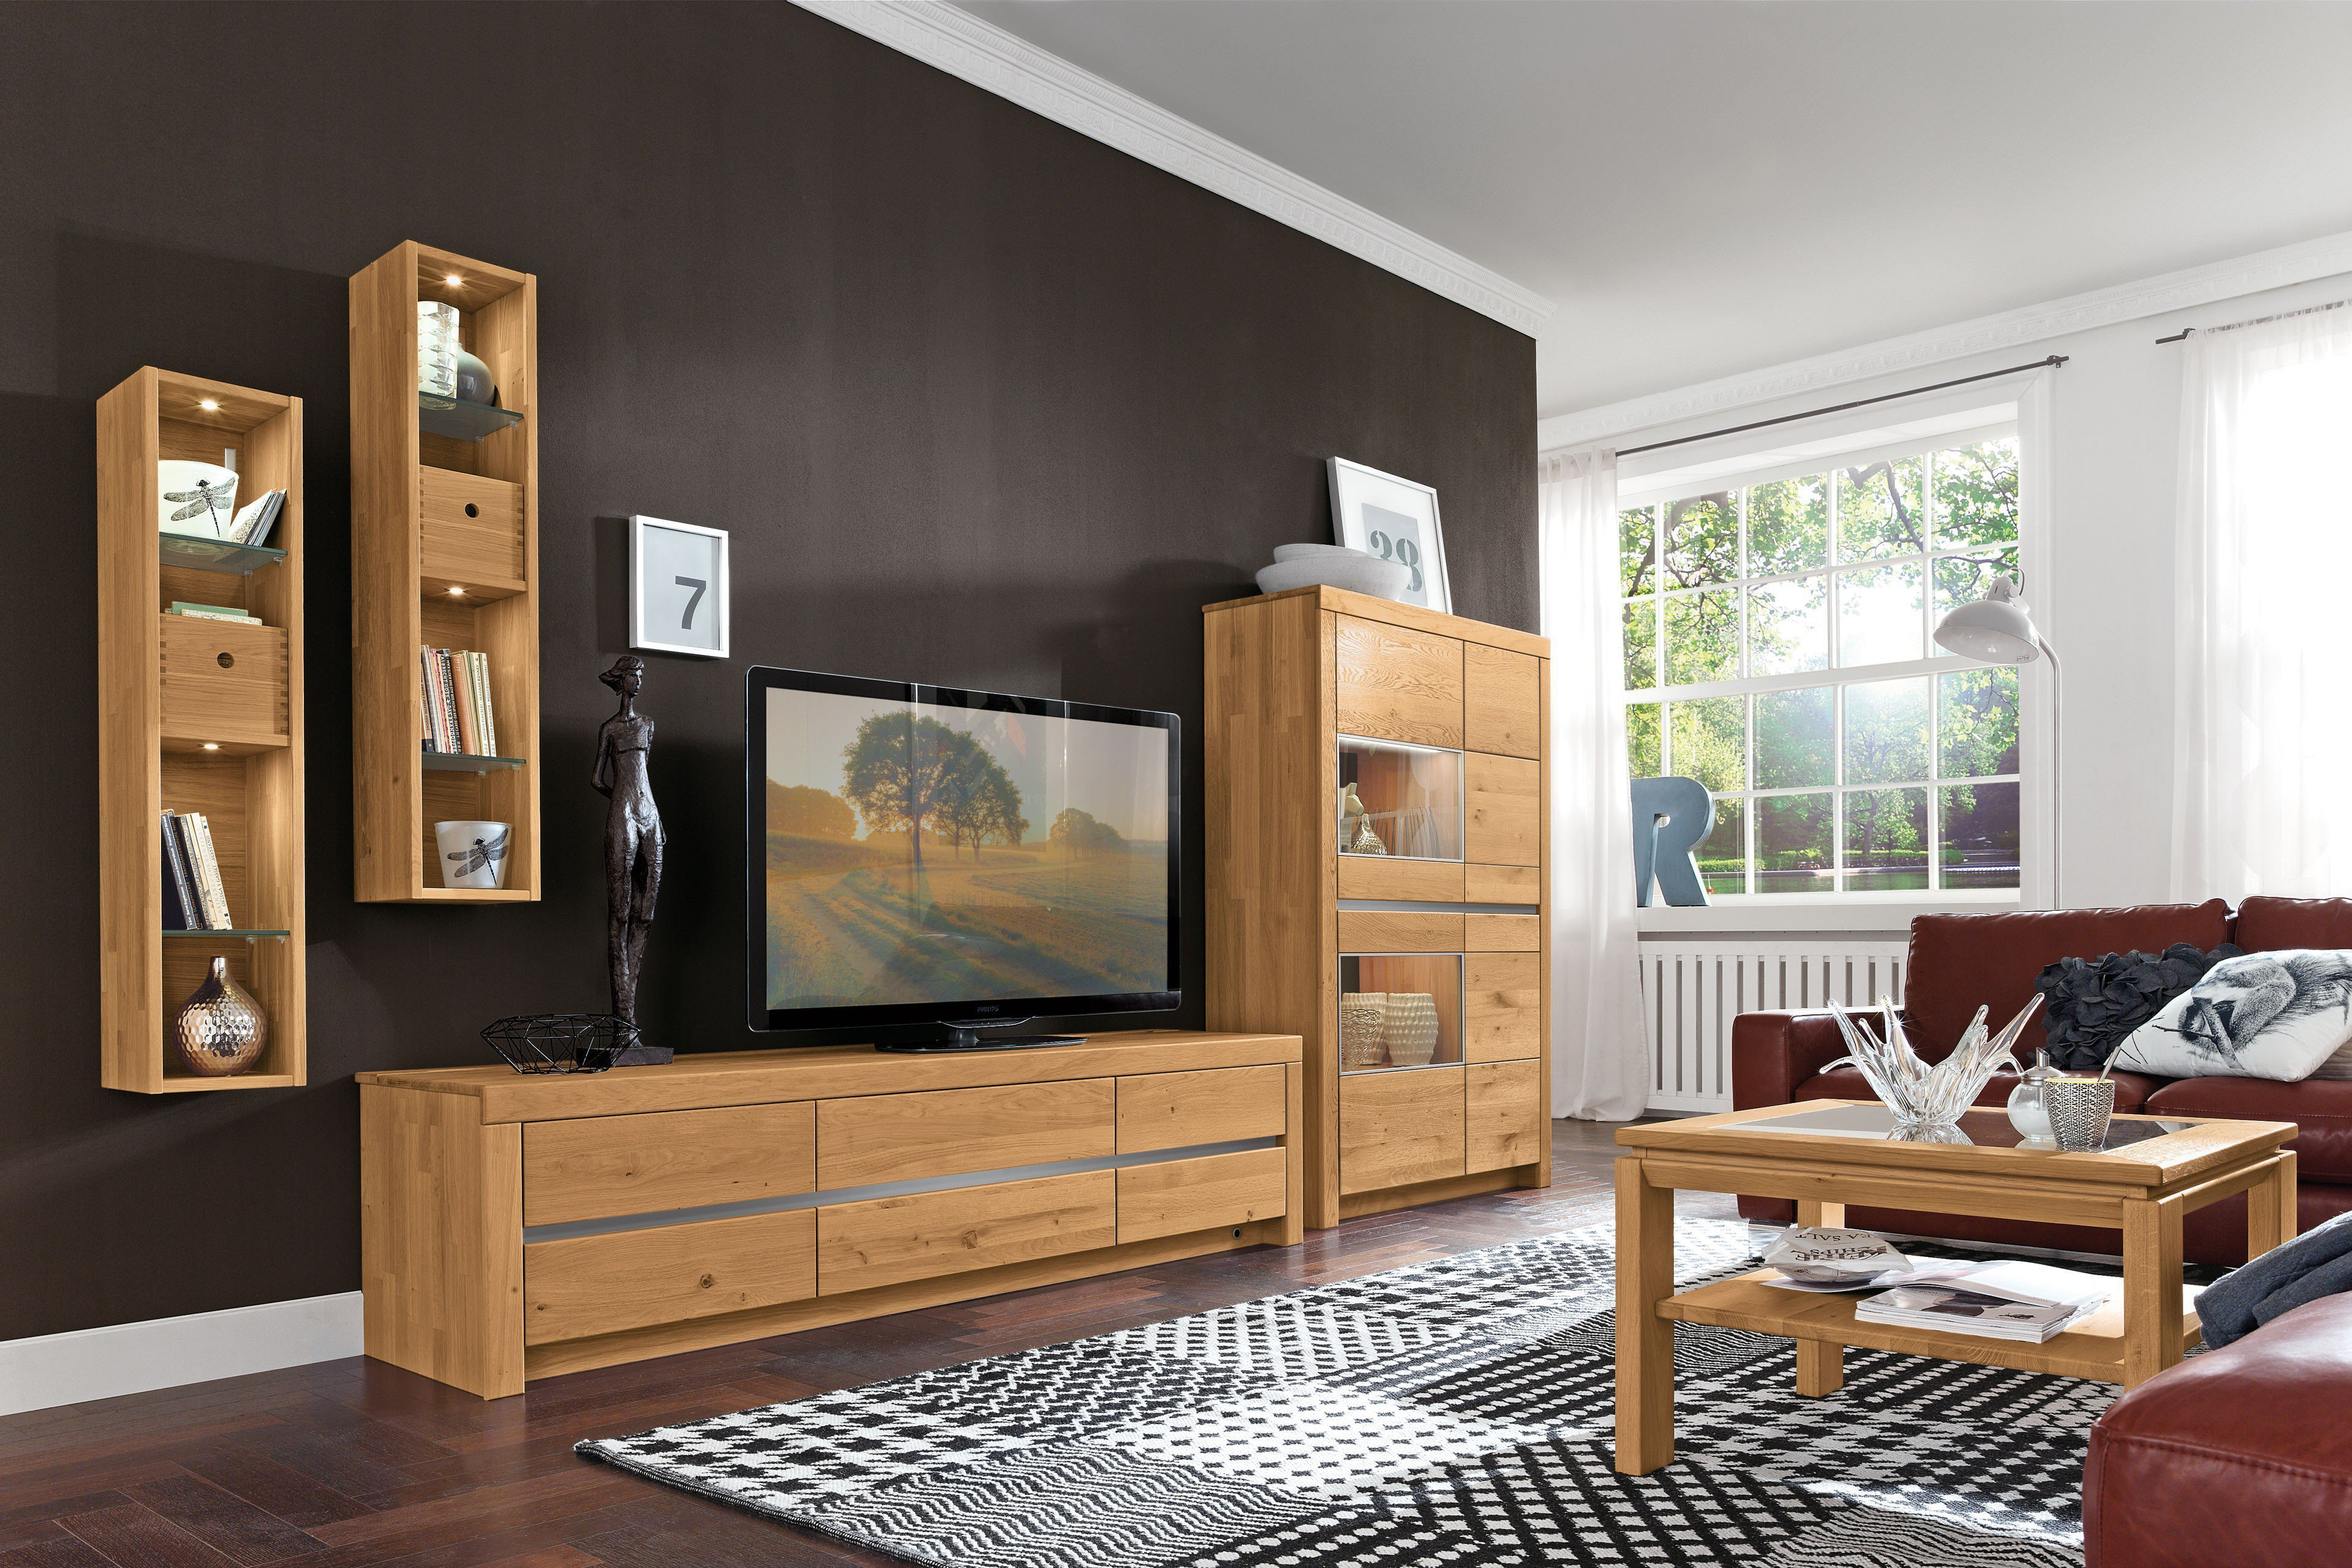 w stmann wohnwand linos 3001 massive wildeiche m bel letz ihr online shop. Black Bedroom Furniture Sets. Home Design Ideas